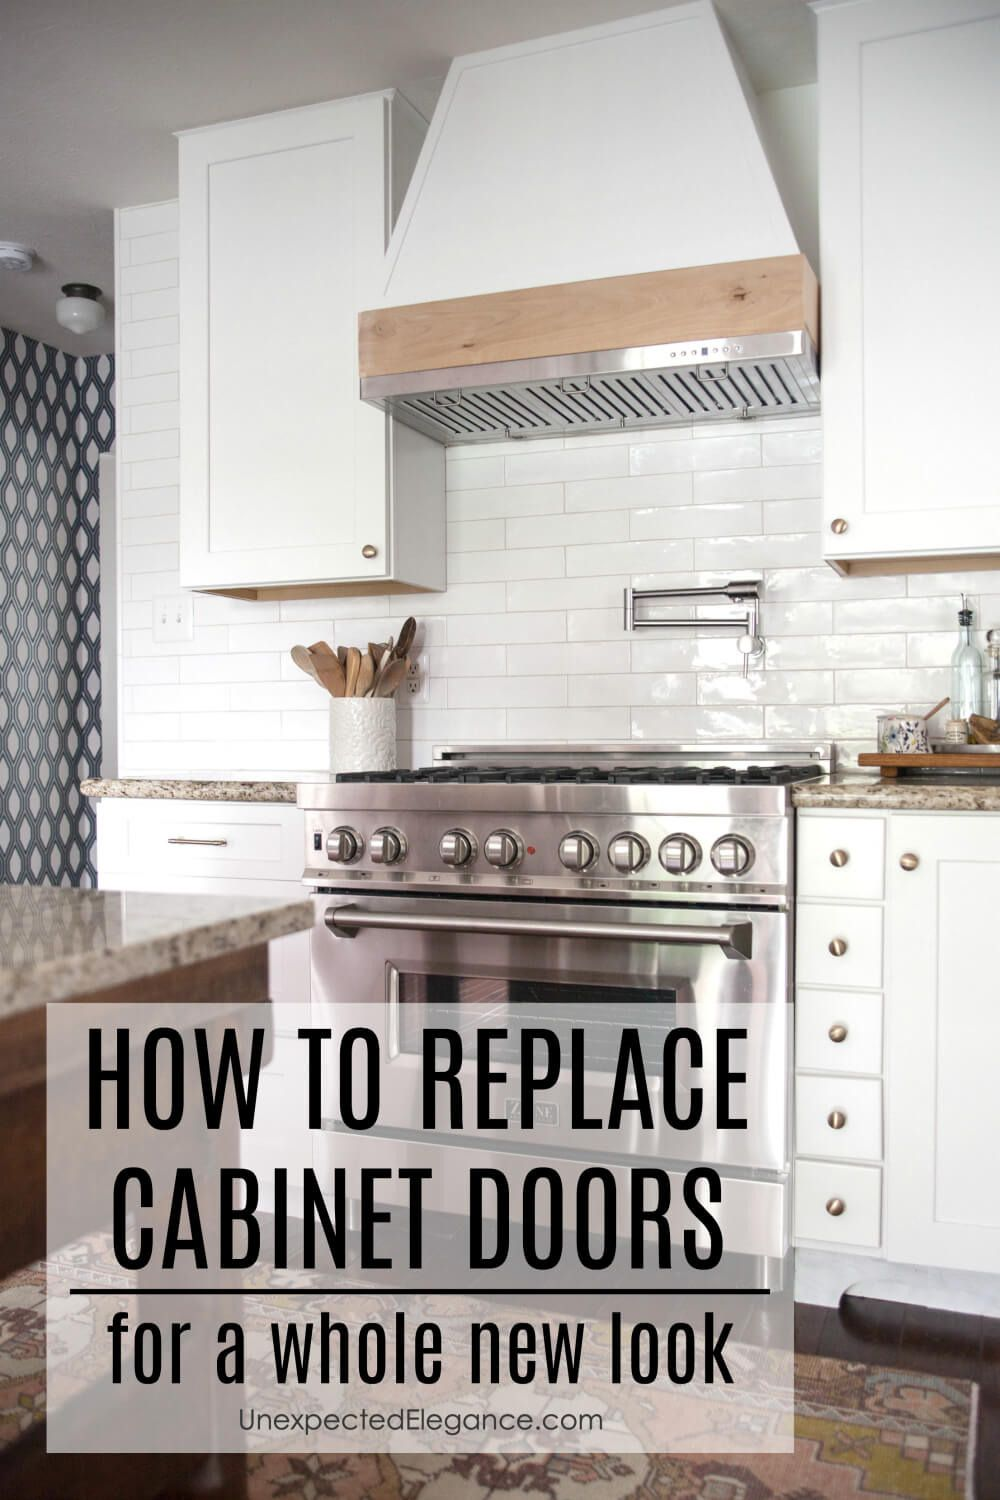 How To Fix Cabinet Doors 2020 In 2020 Replacing Kitchen Cabinets Kitchen Cabinet Doors Only New Kitchen Cabinet Doors